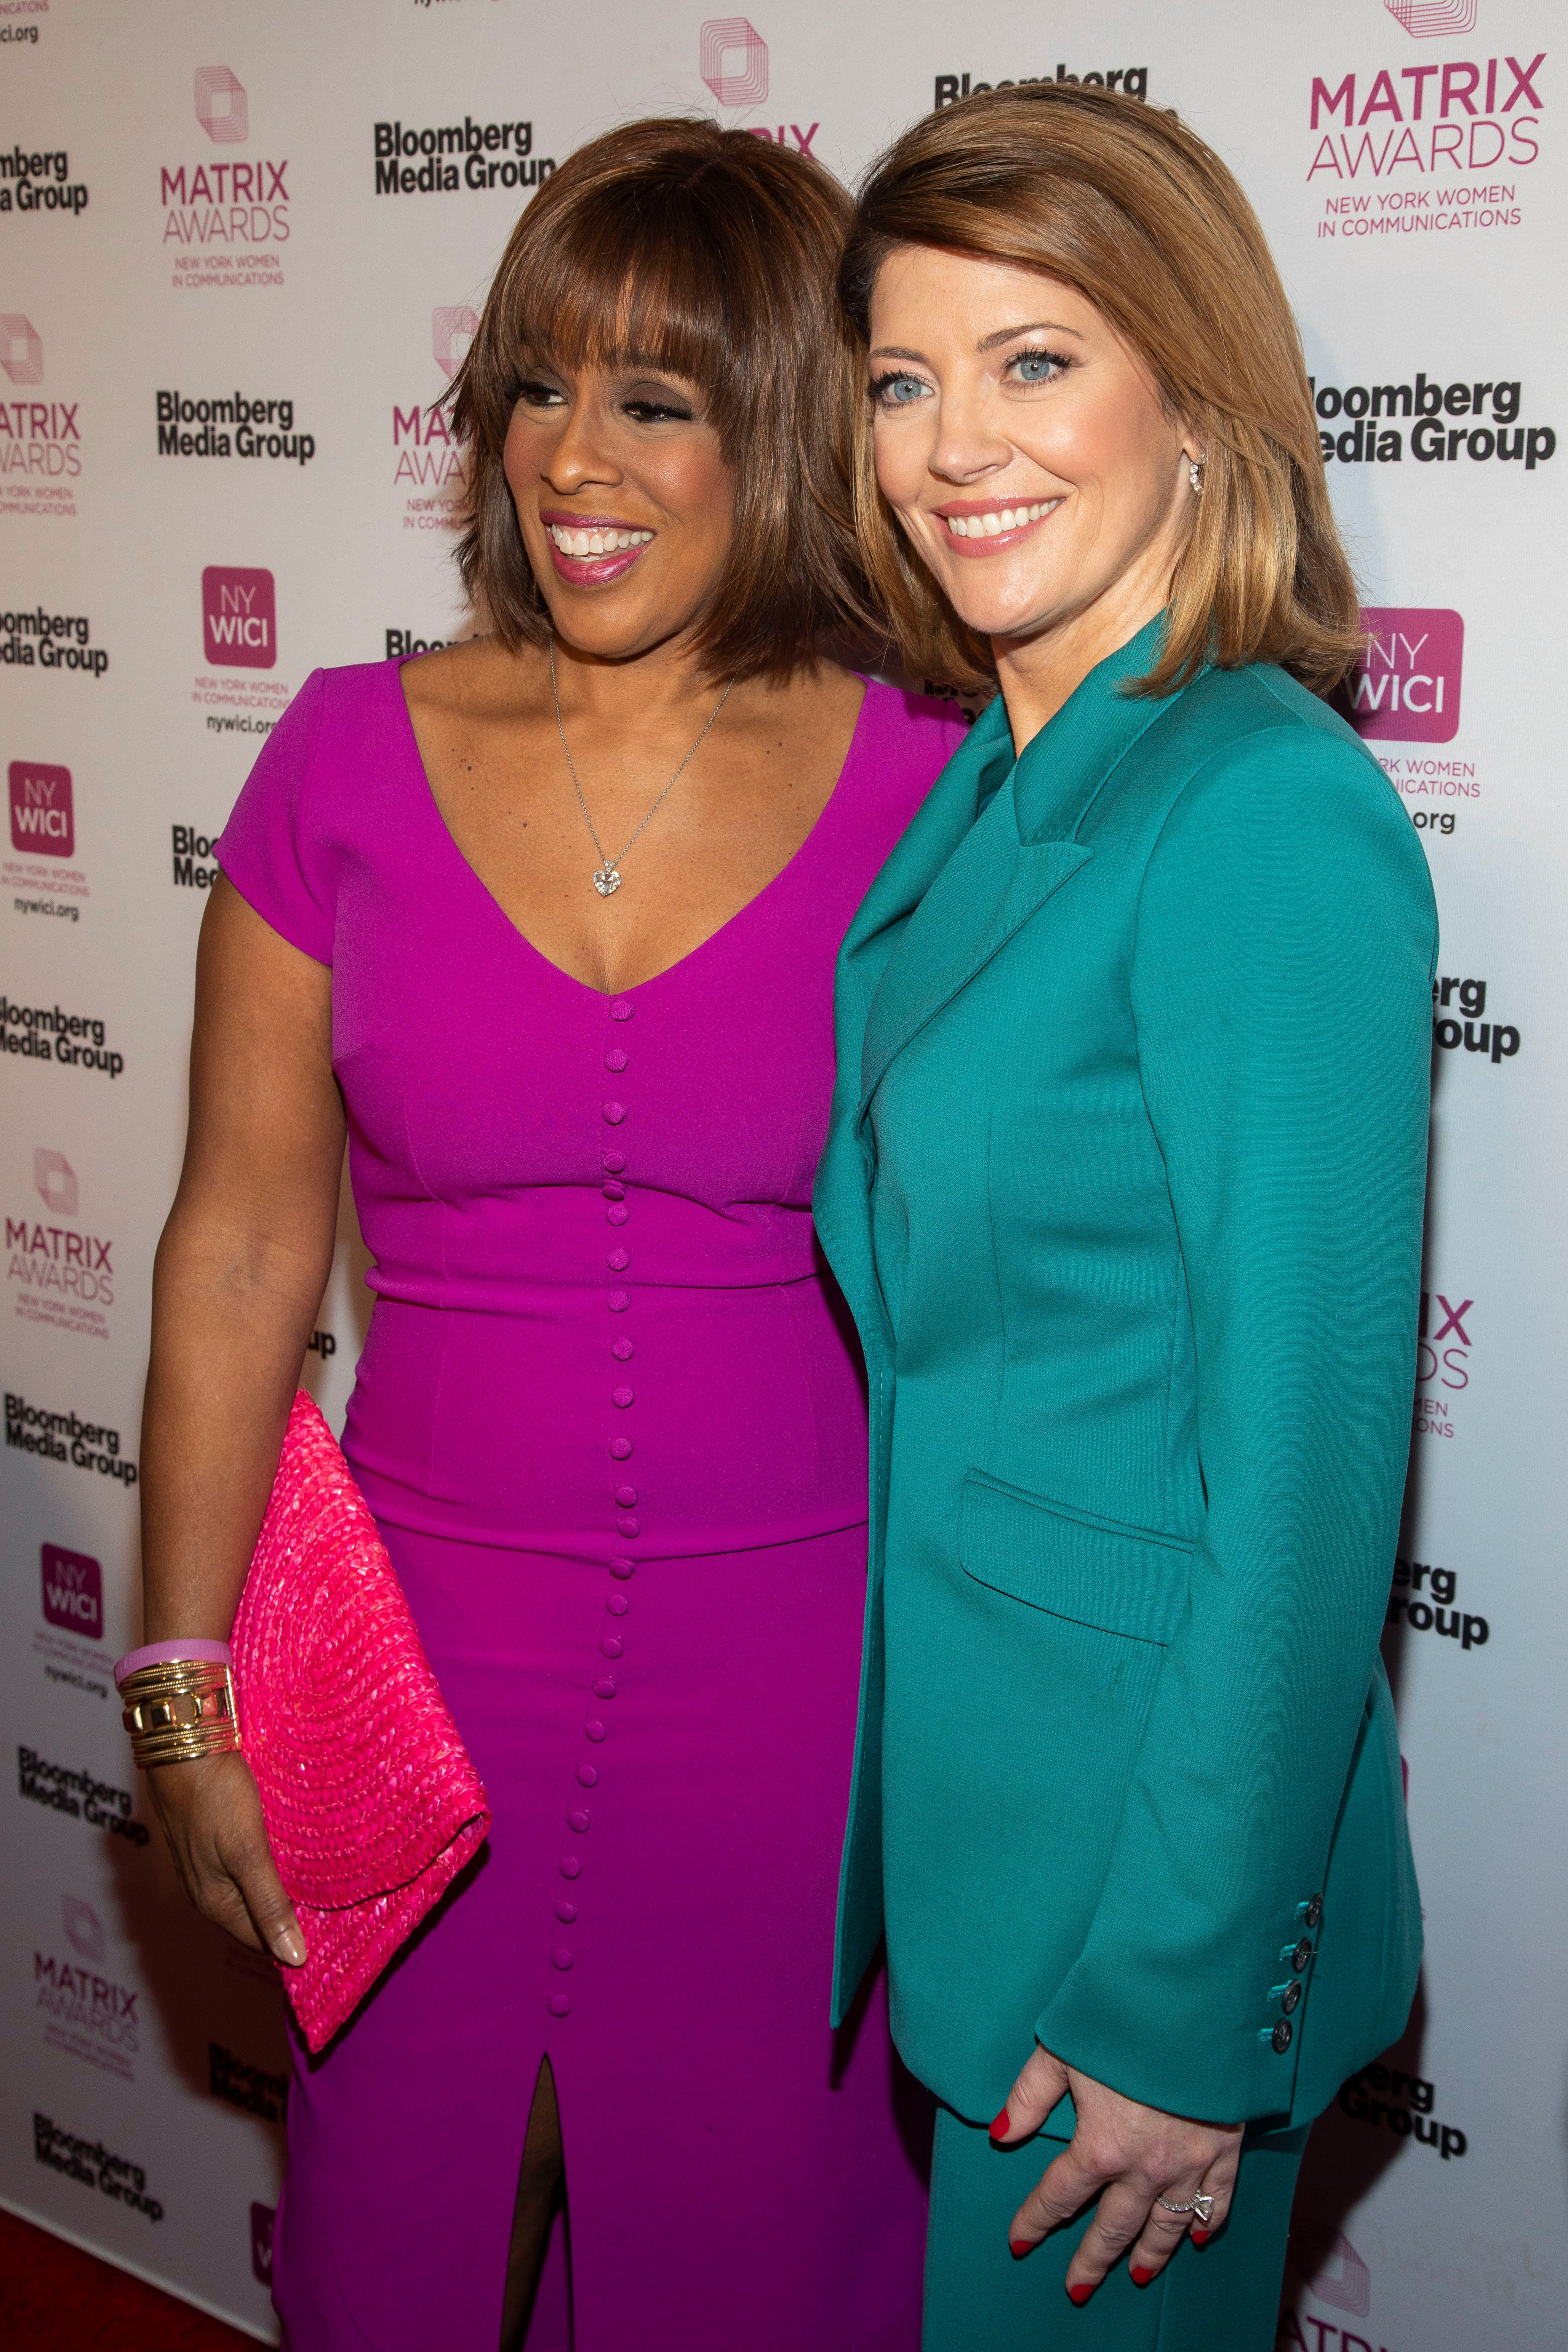 Gayle King, Norah O'Donnell. Gayle King, left, and Norah O'Donnell, right, attend the Matrix Awards at the Sheraton New York Times Square, in New York2019 Matrix Awards, New York, USA - 06 May 2019